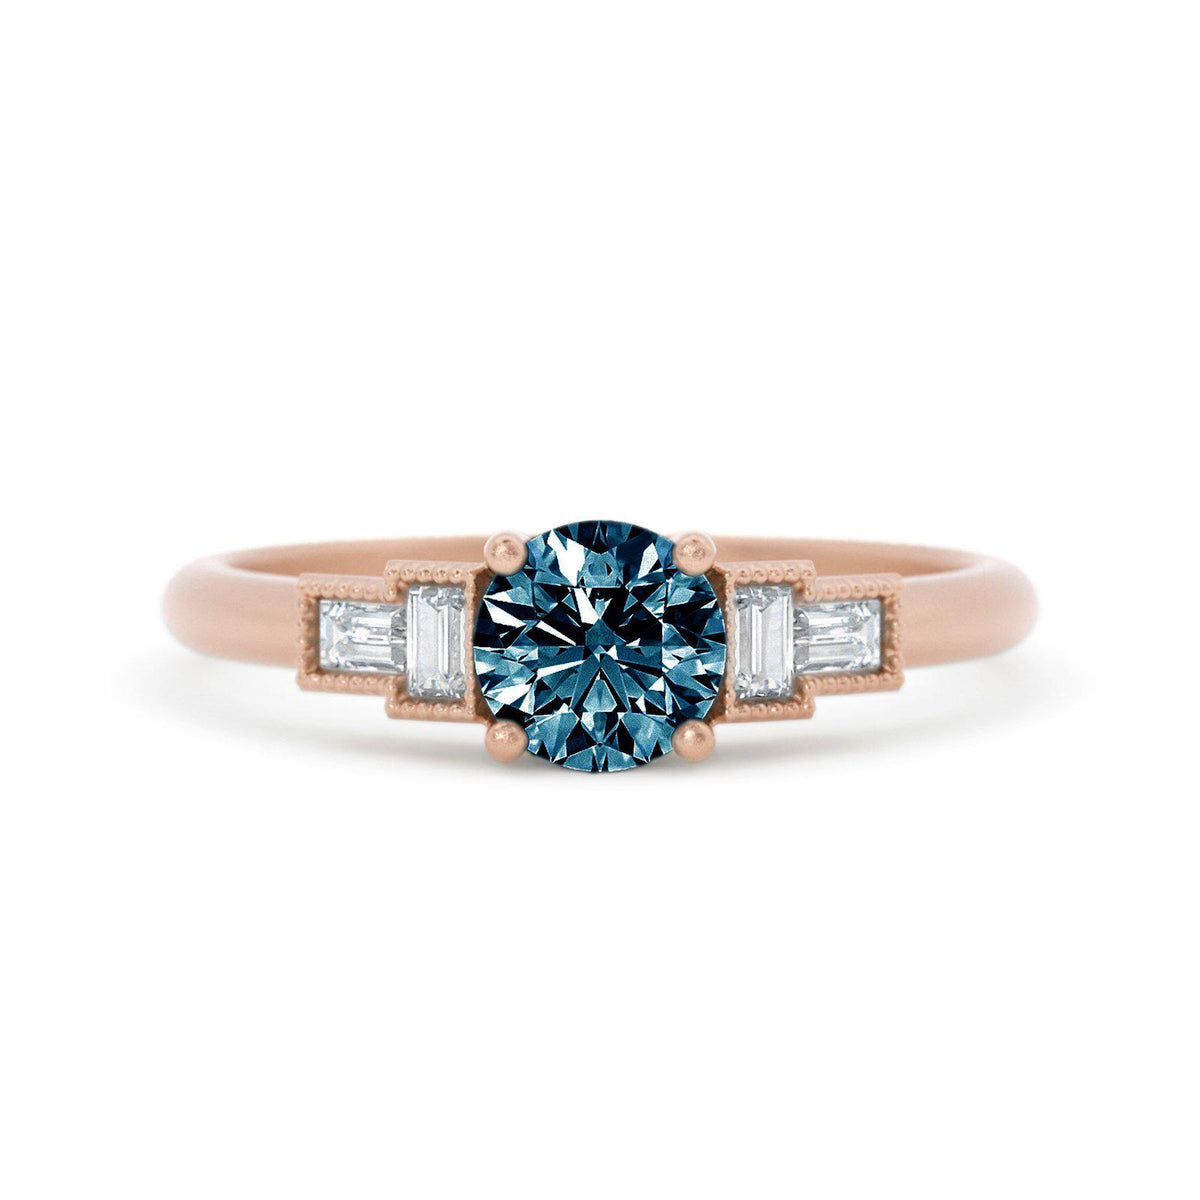 Marlow Montana Sapphire Ring with Baguette Diamonds Rose Gold